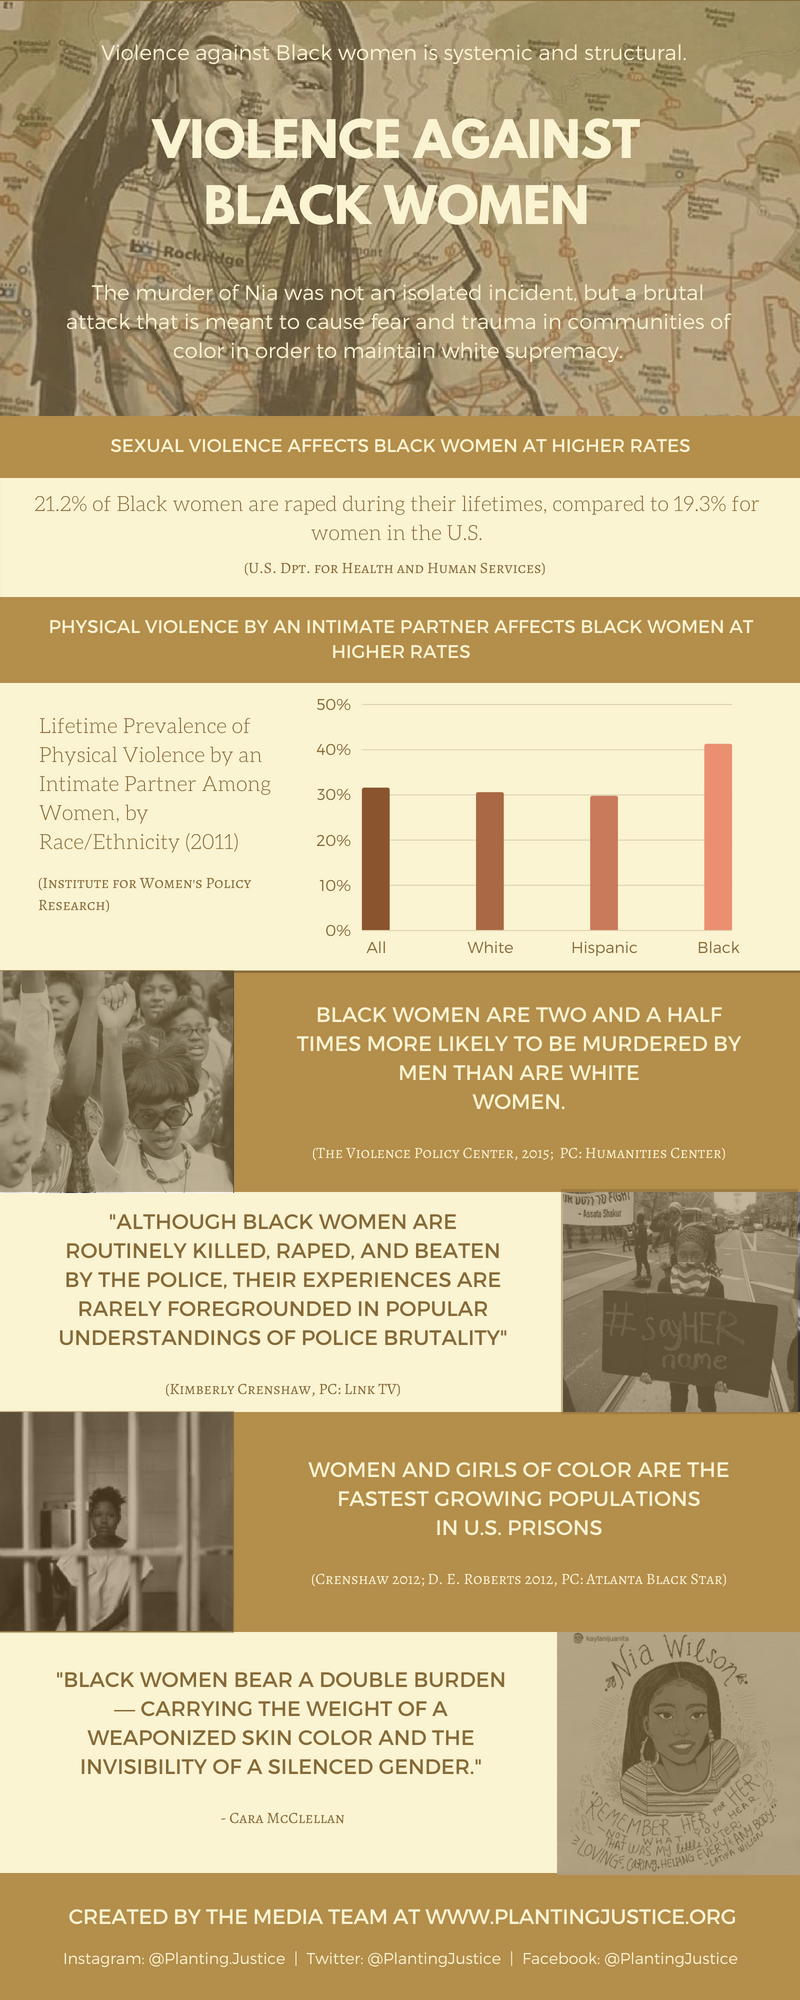 Violence Against Black Women